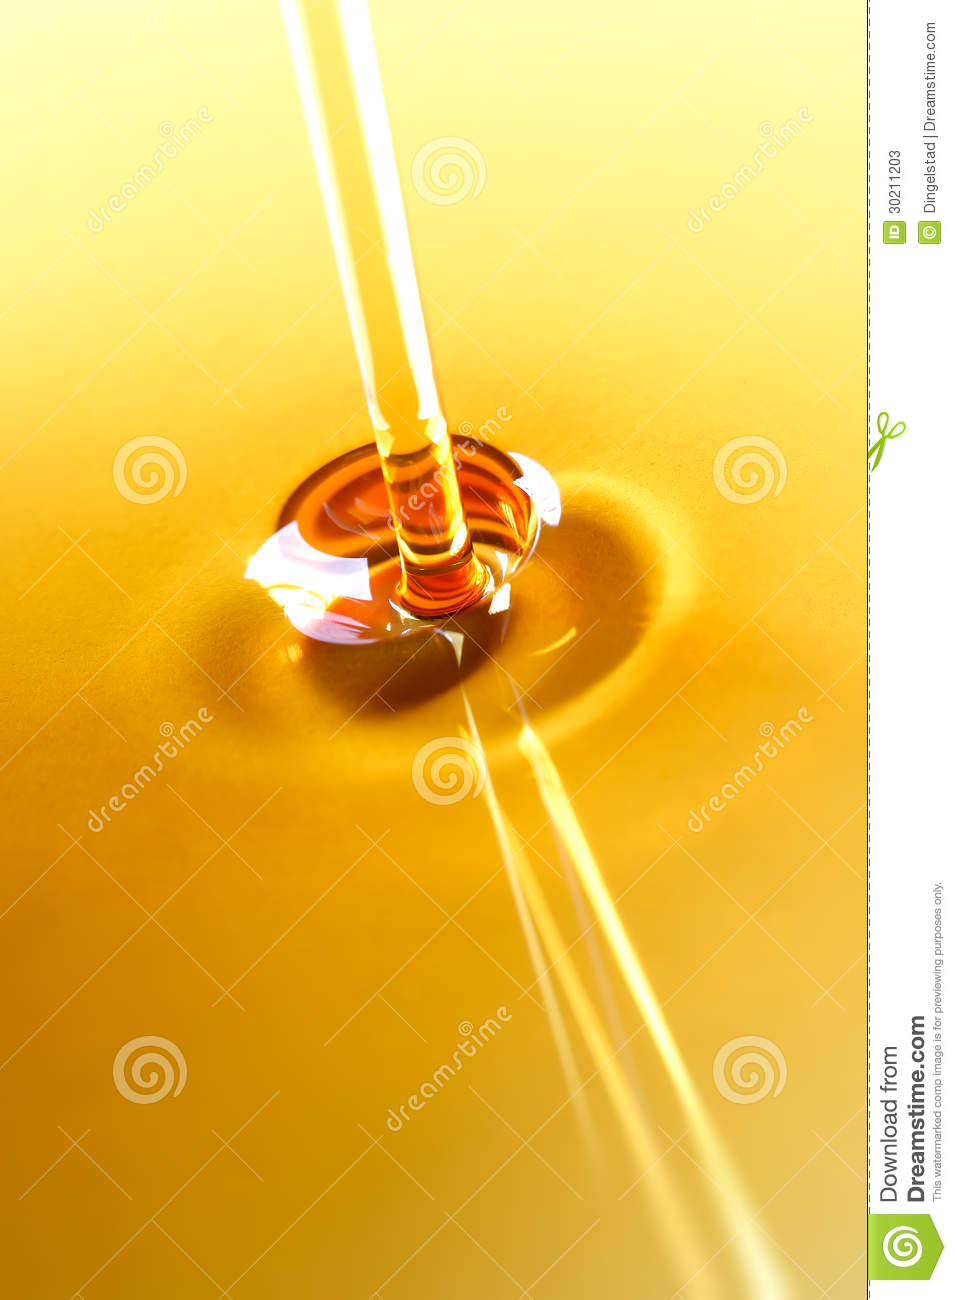 how to clean up cooking oil